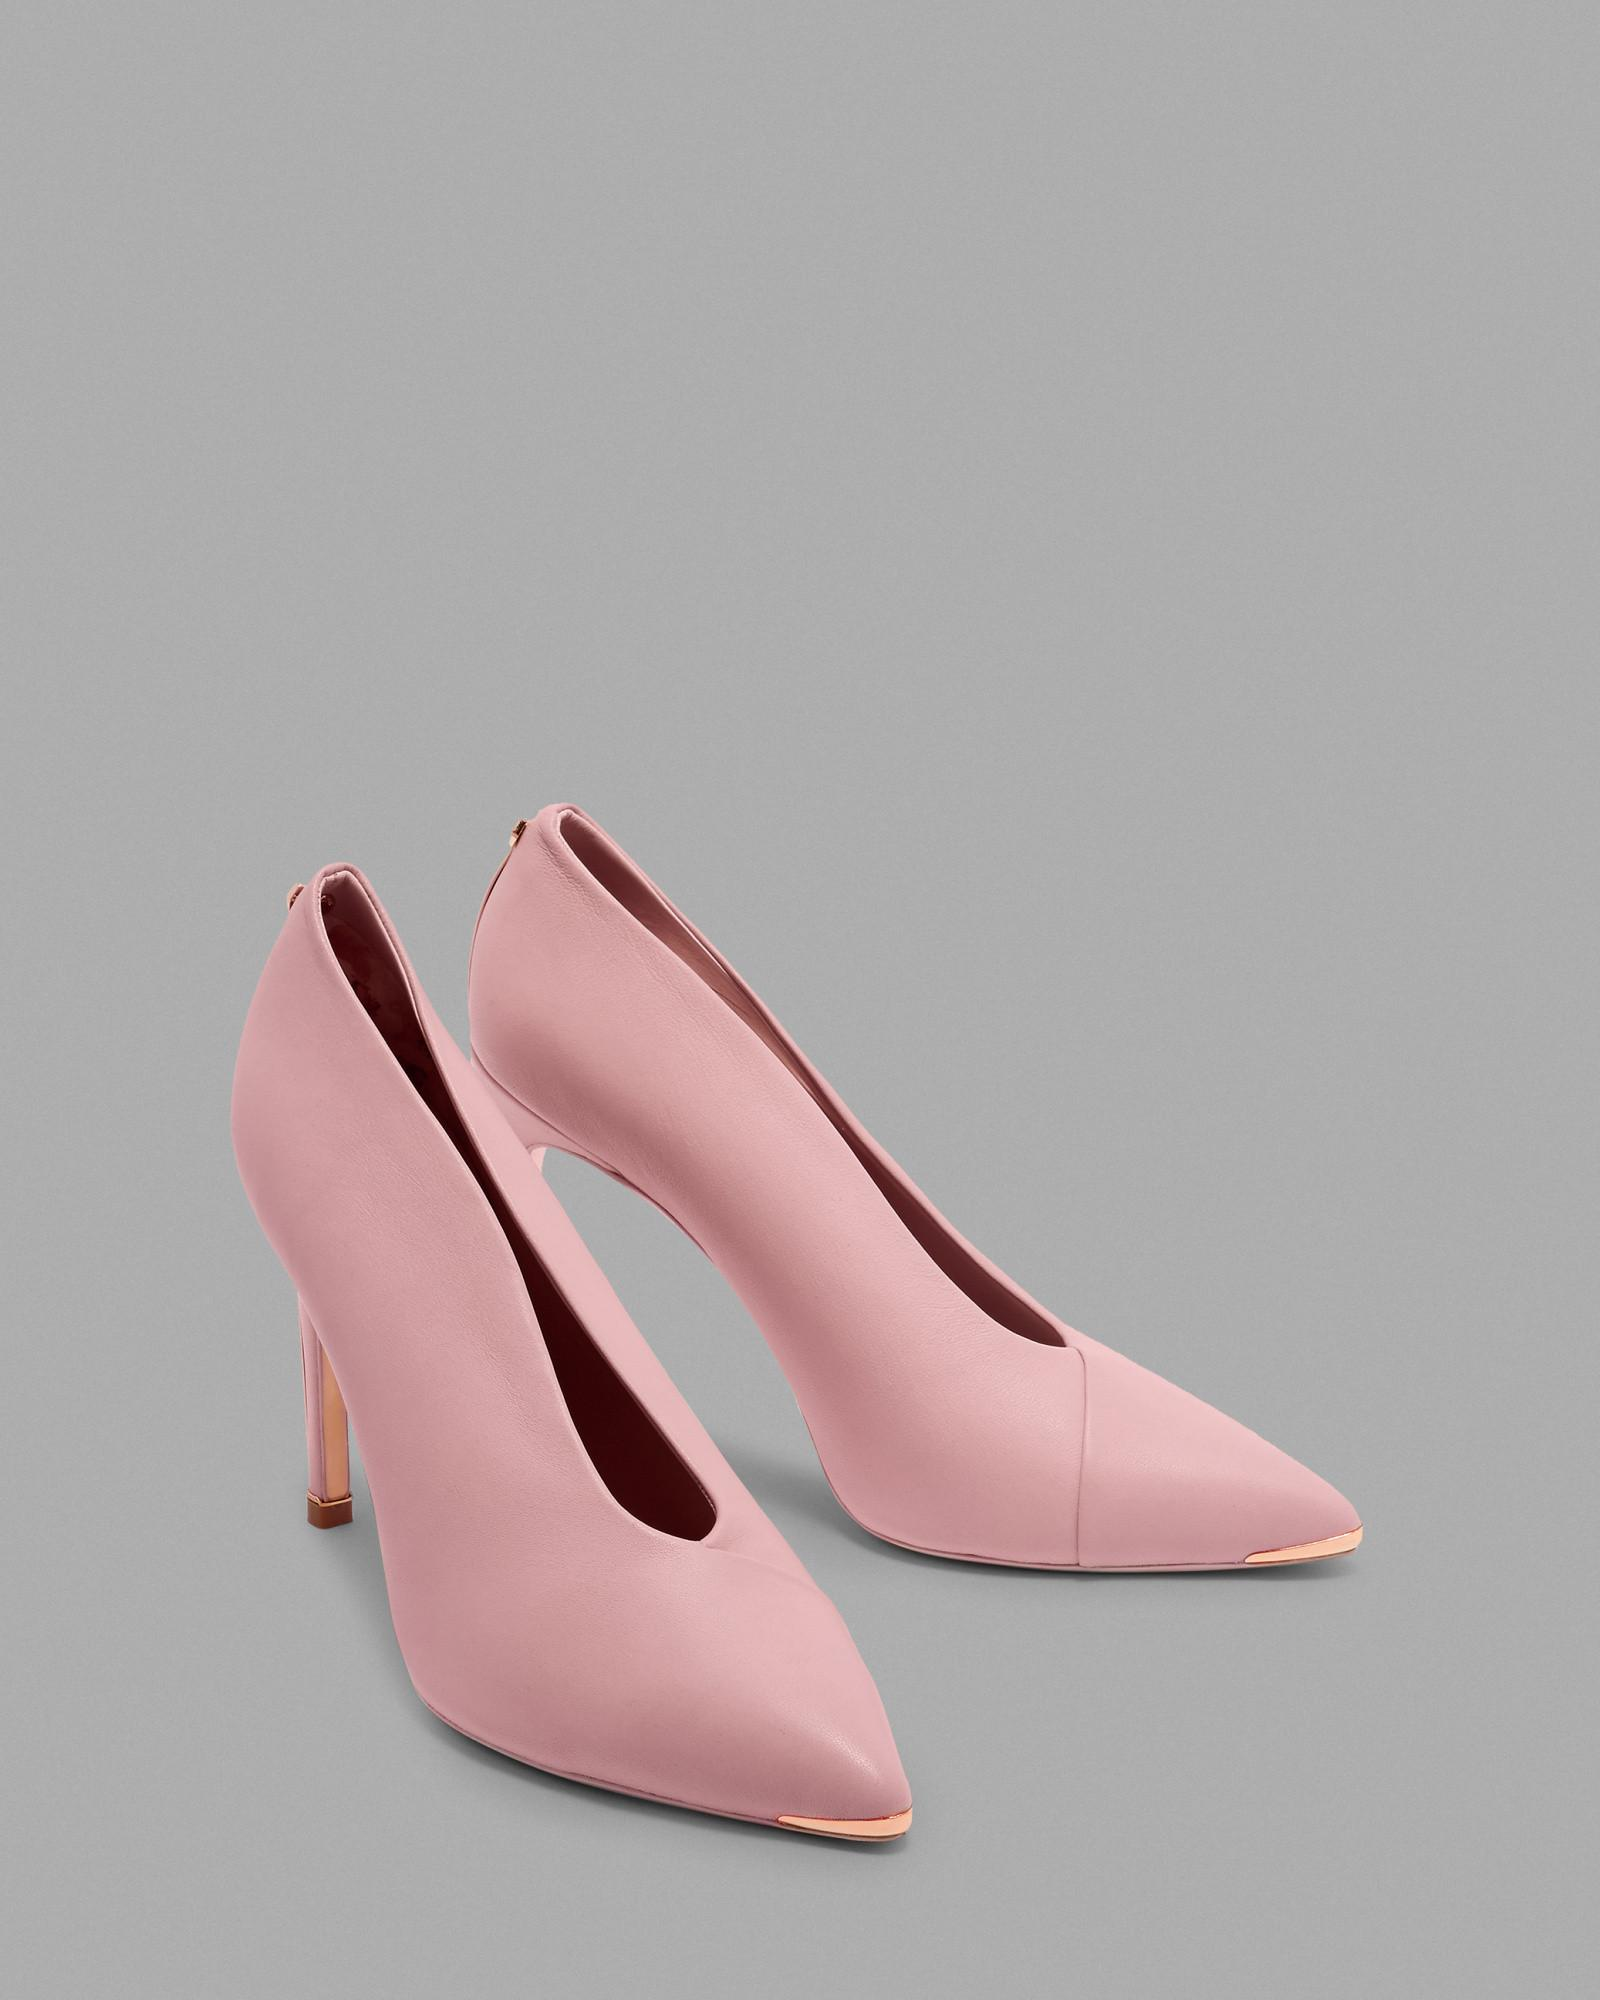 d1bb71aeefd Ted Baker Bow Heel High Vamp Courts in Pink - Lyst